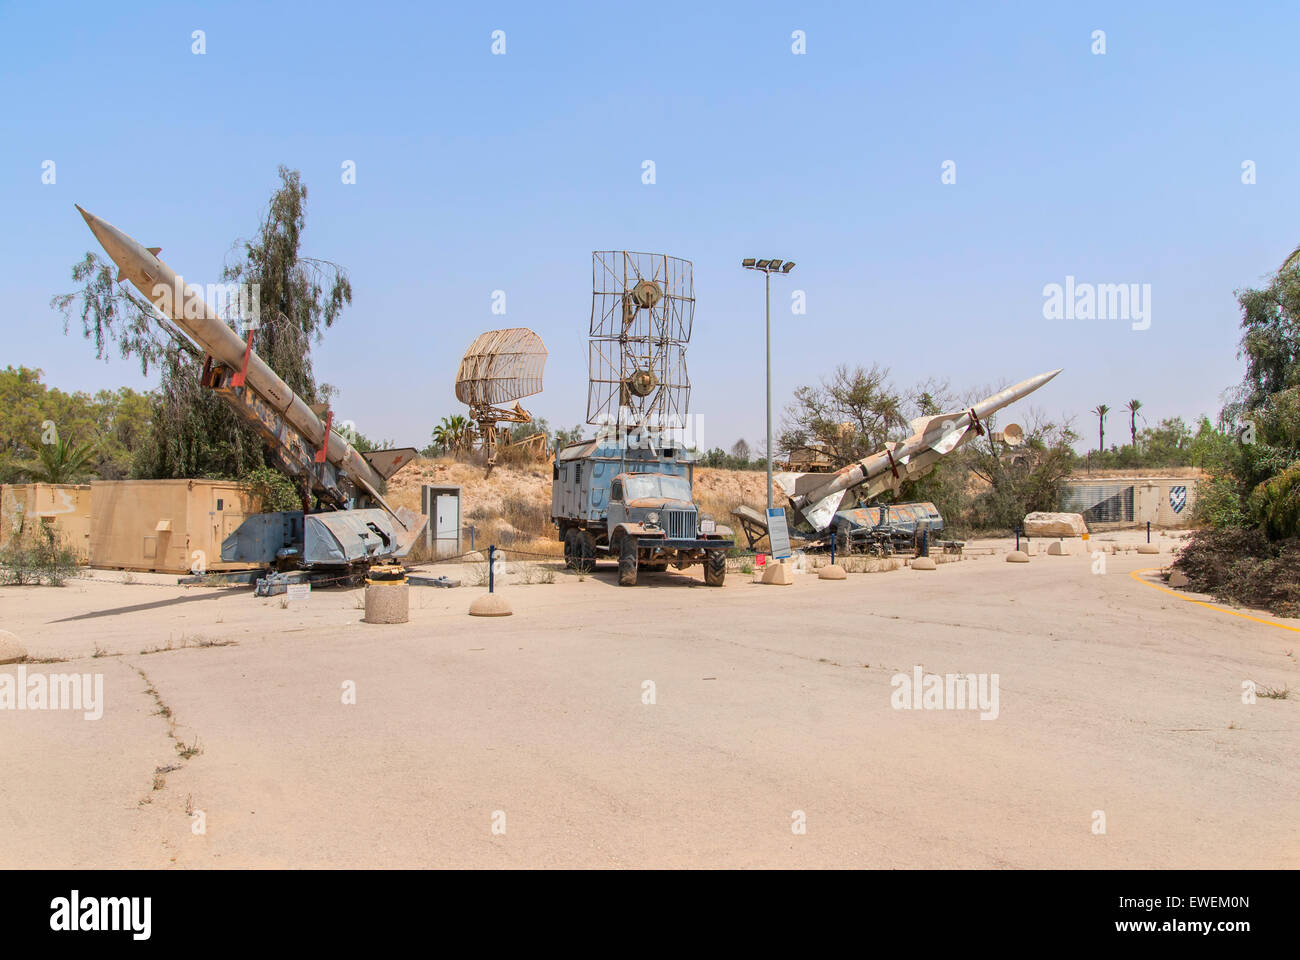 Hatzerim, Israel -  April 27, 2015: Old russian antiaircraft defense rocket launcher missiles at the museum of the - Stock Image